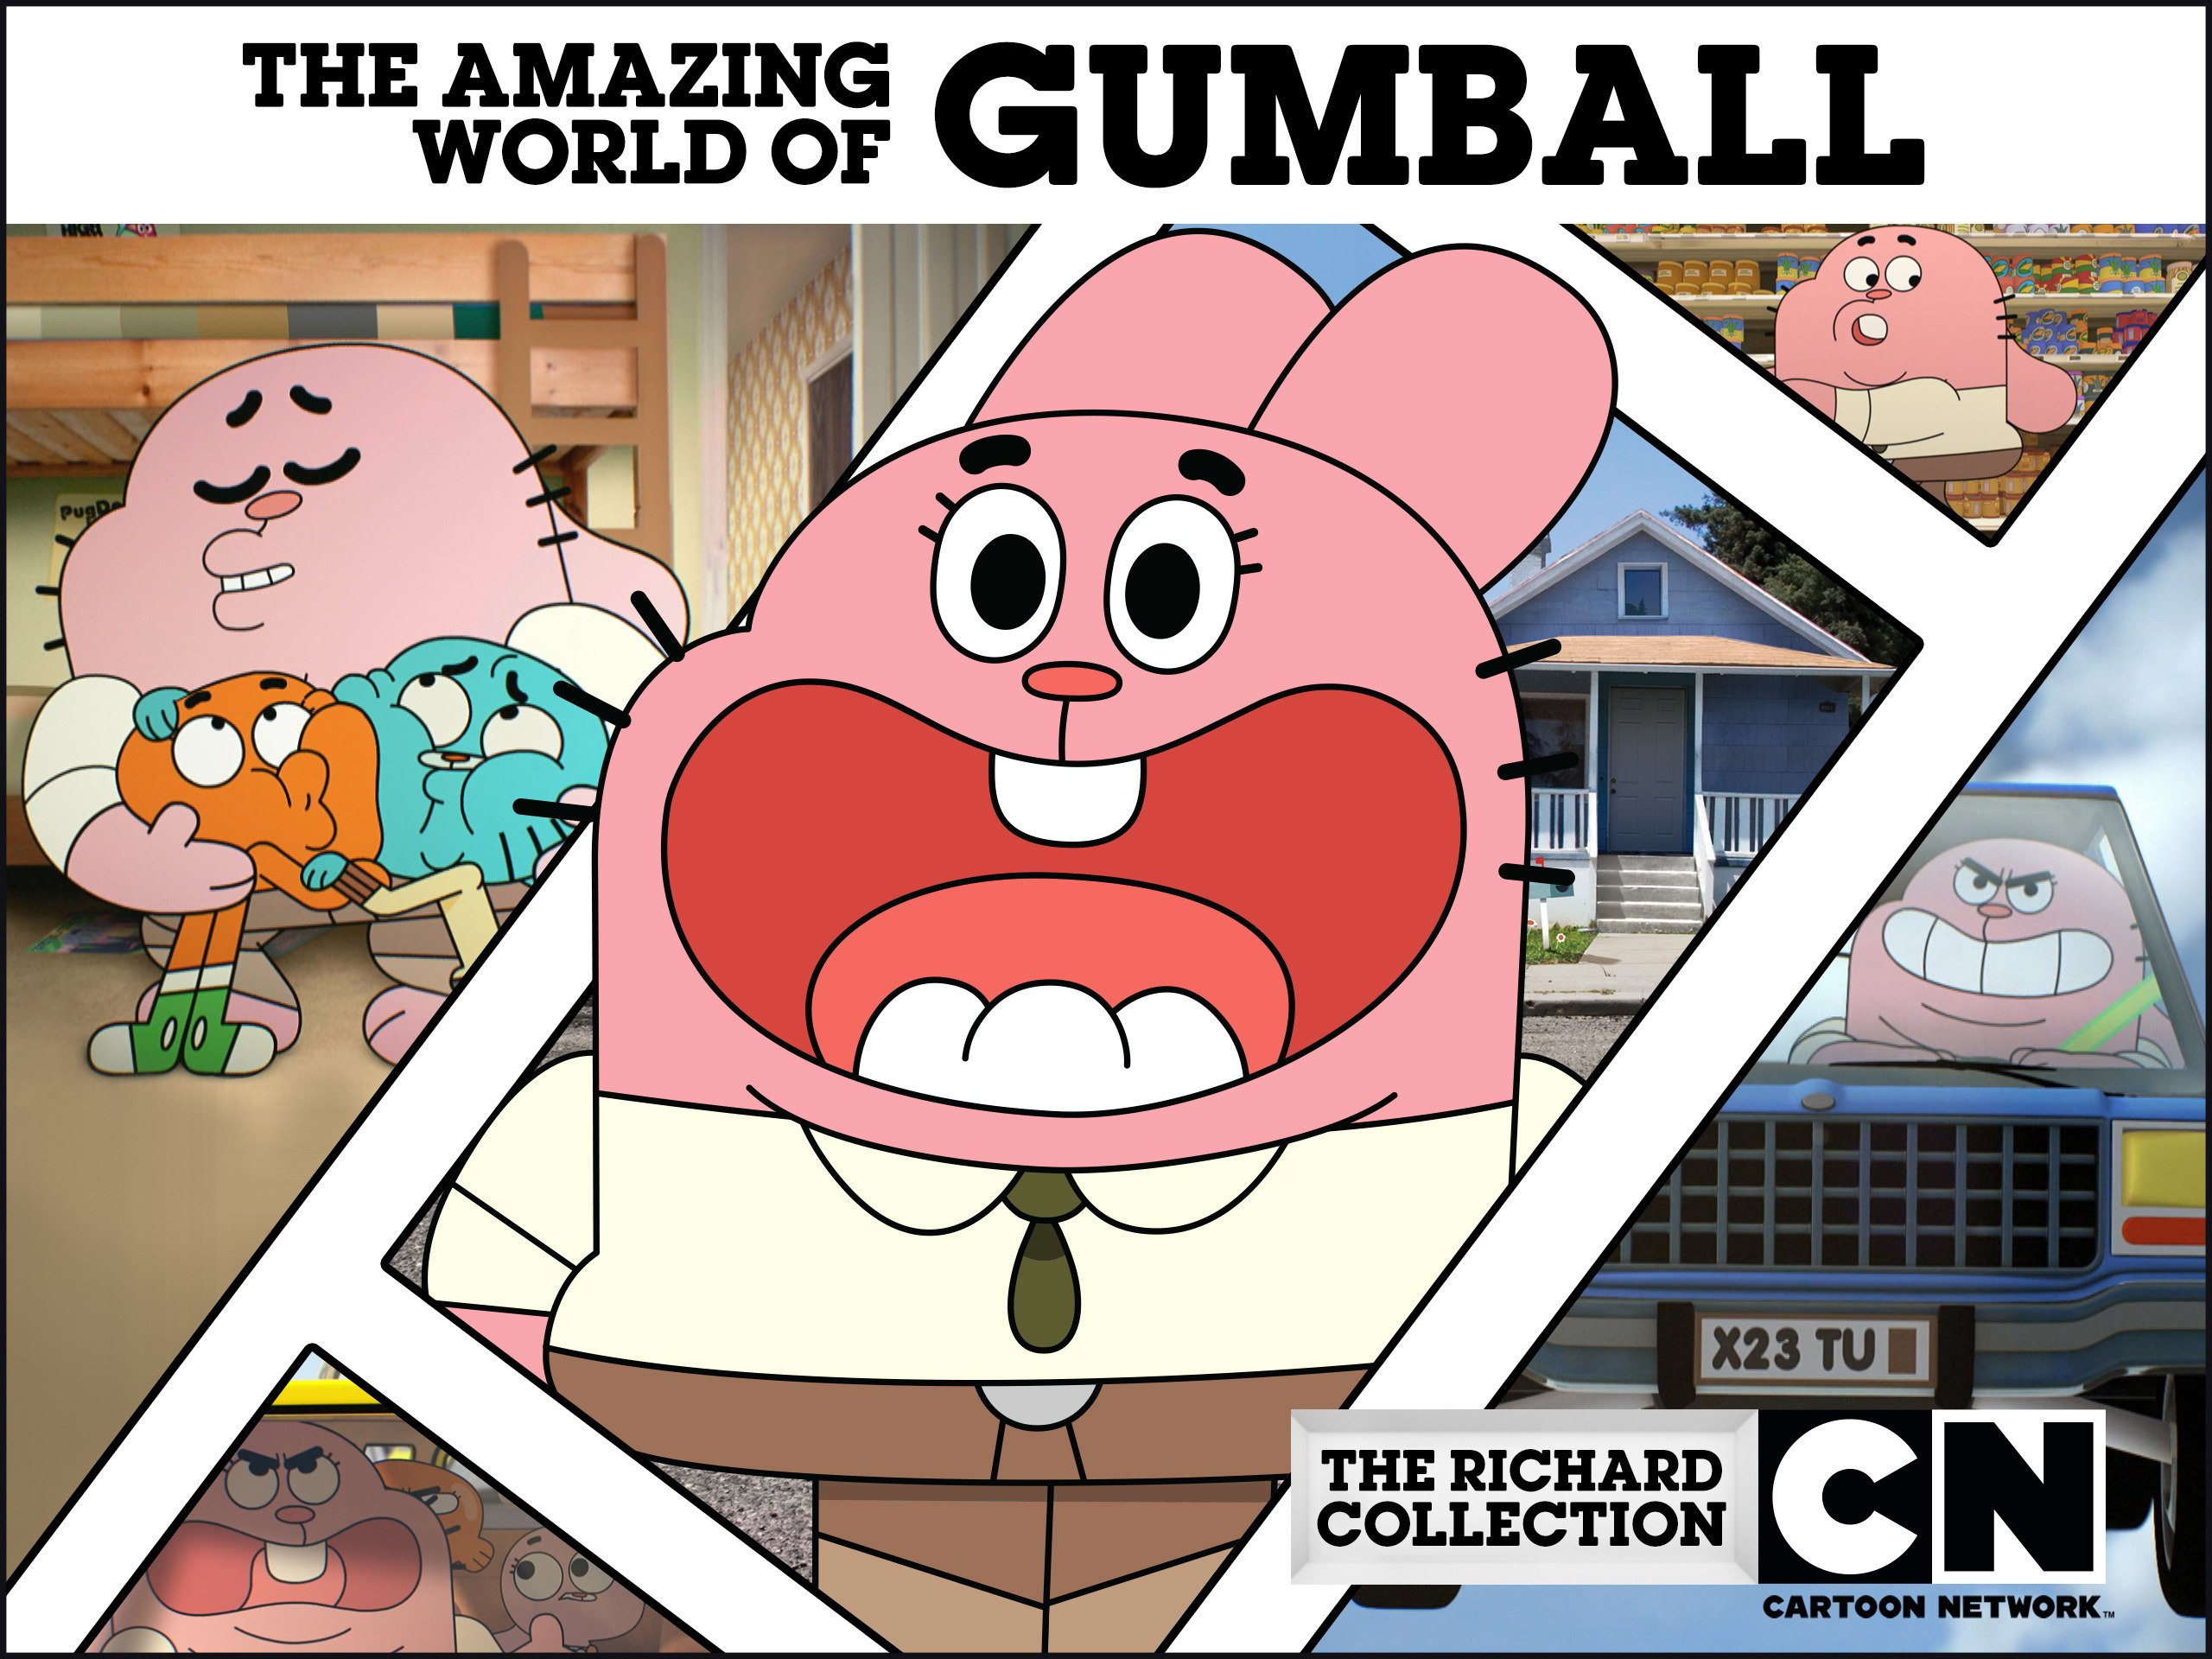 The Amazing World Of Gumball Collection